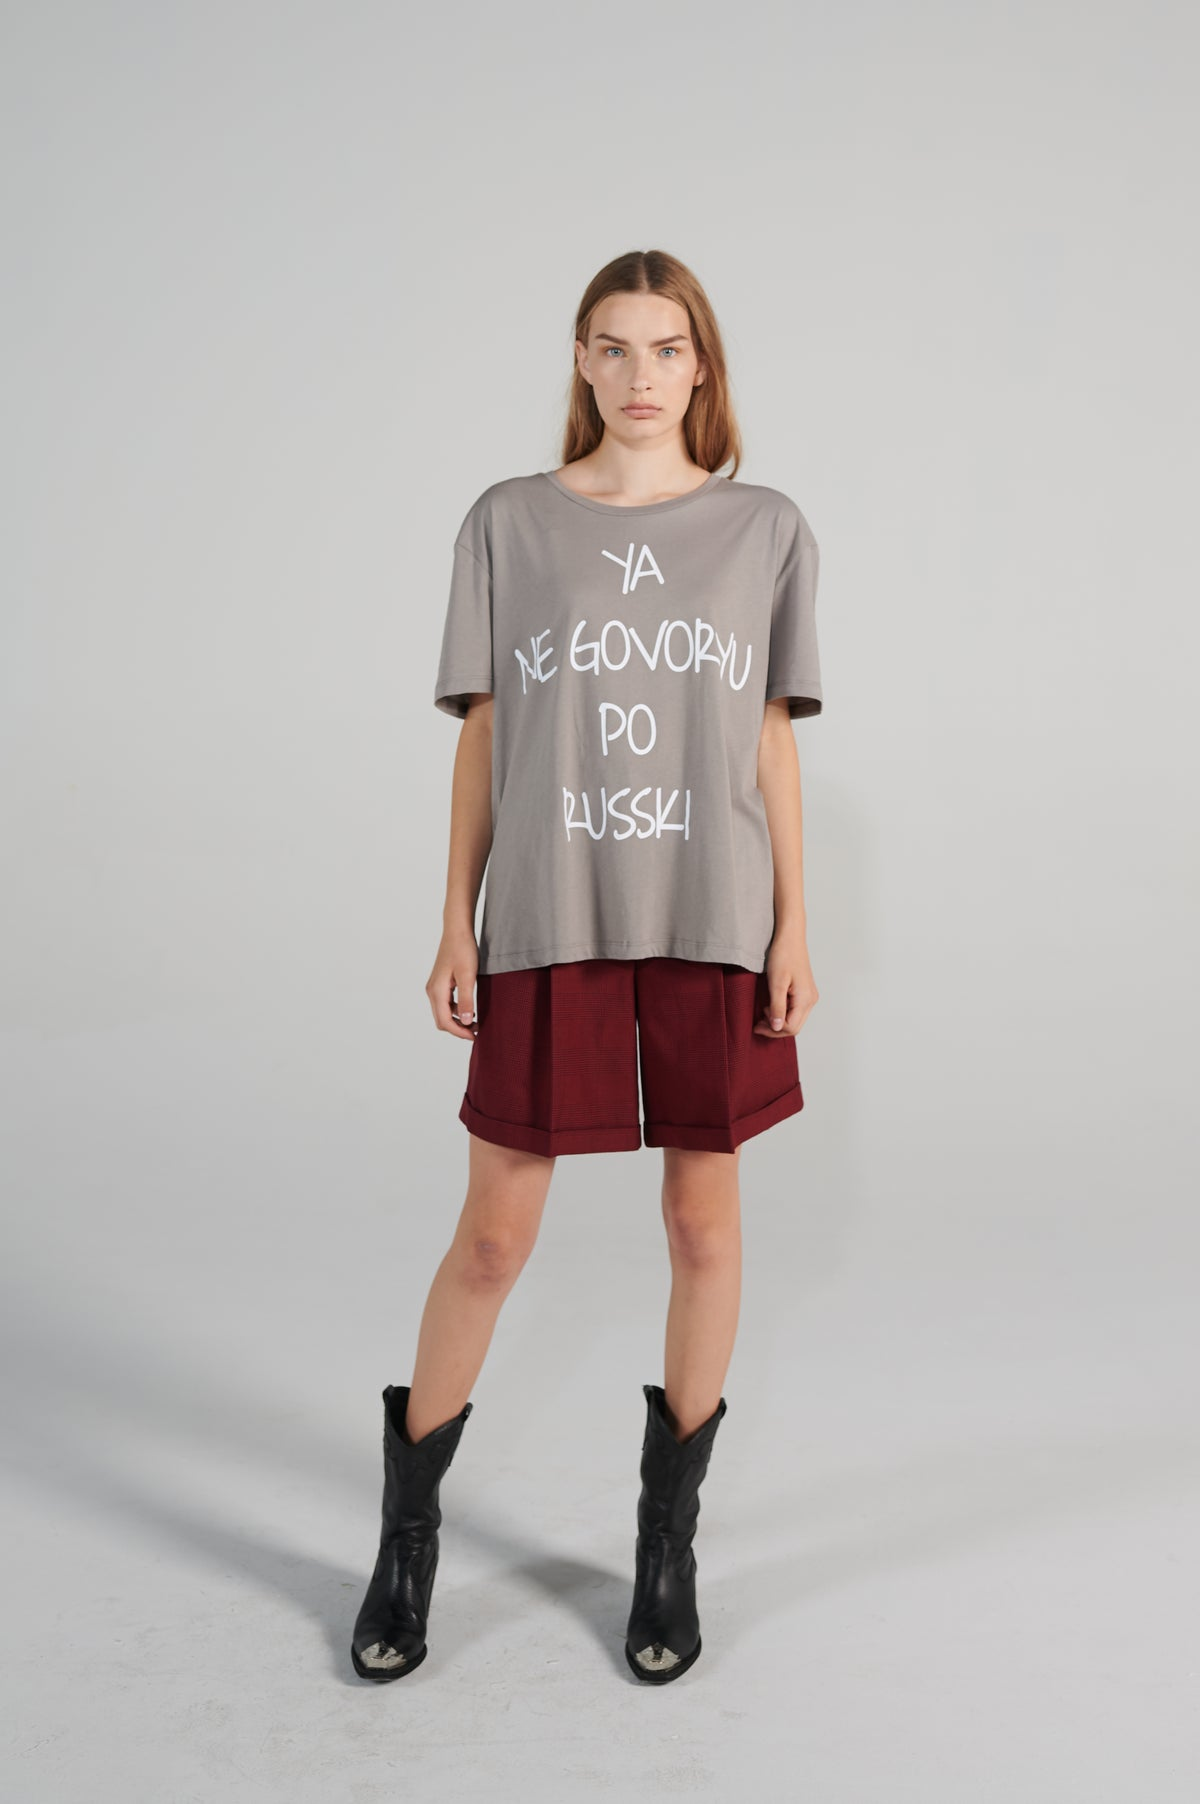 russki-grey-organic-cotton-tshirt-with-wording-le-slap-oversize-fit.jpg